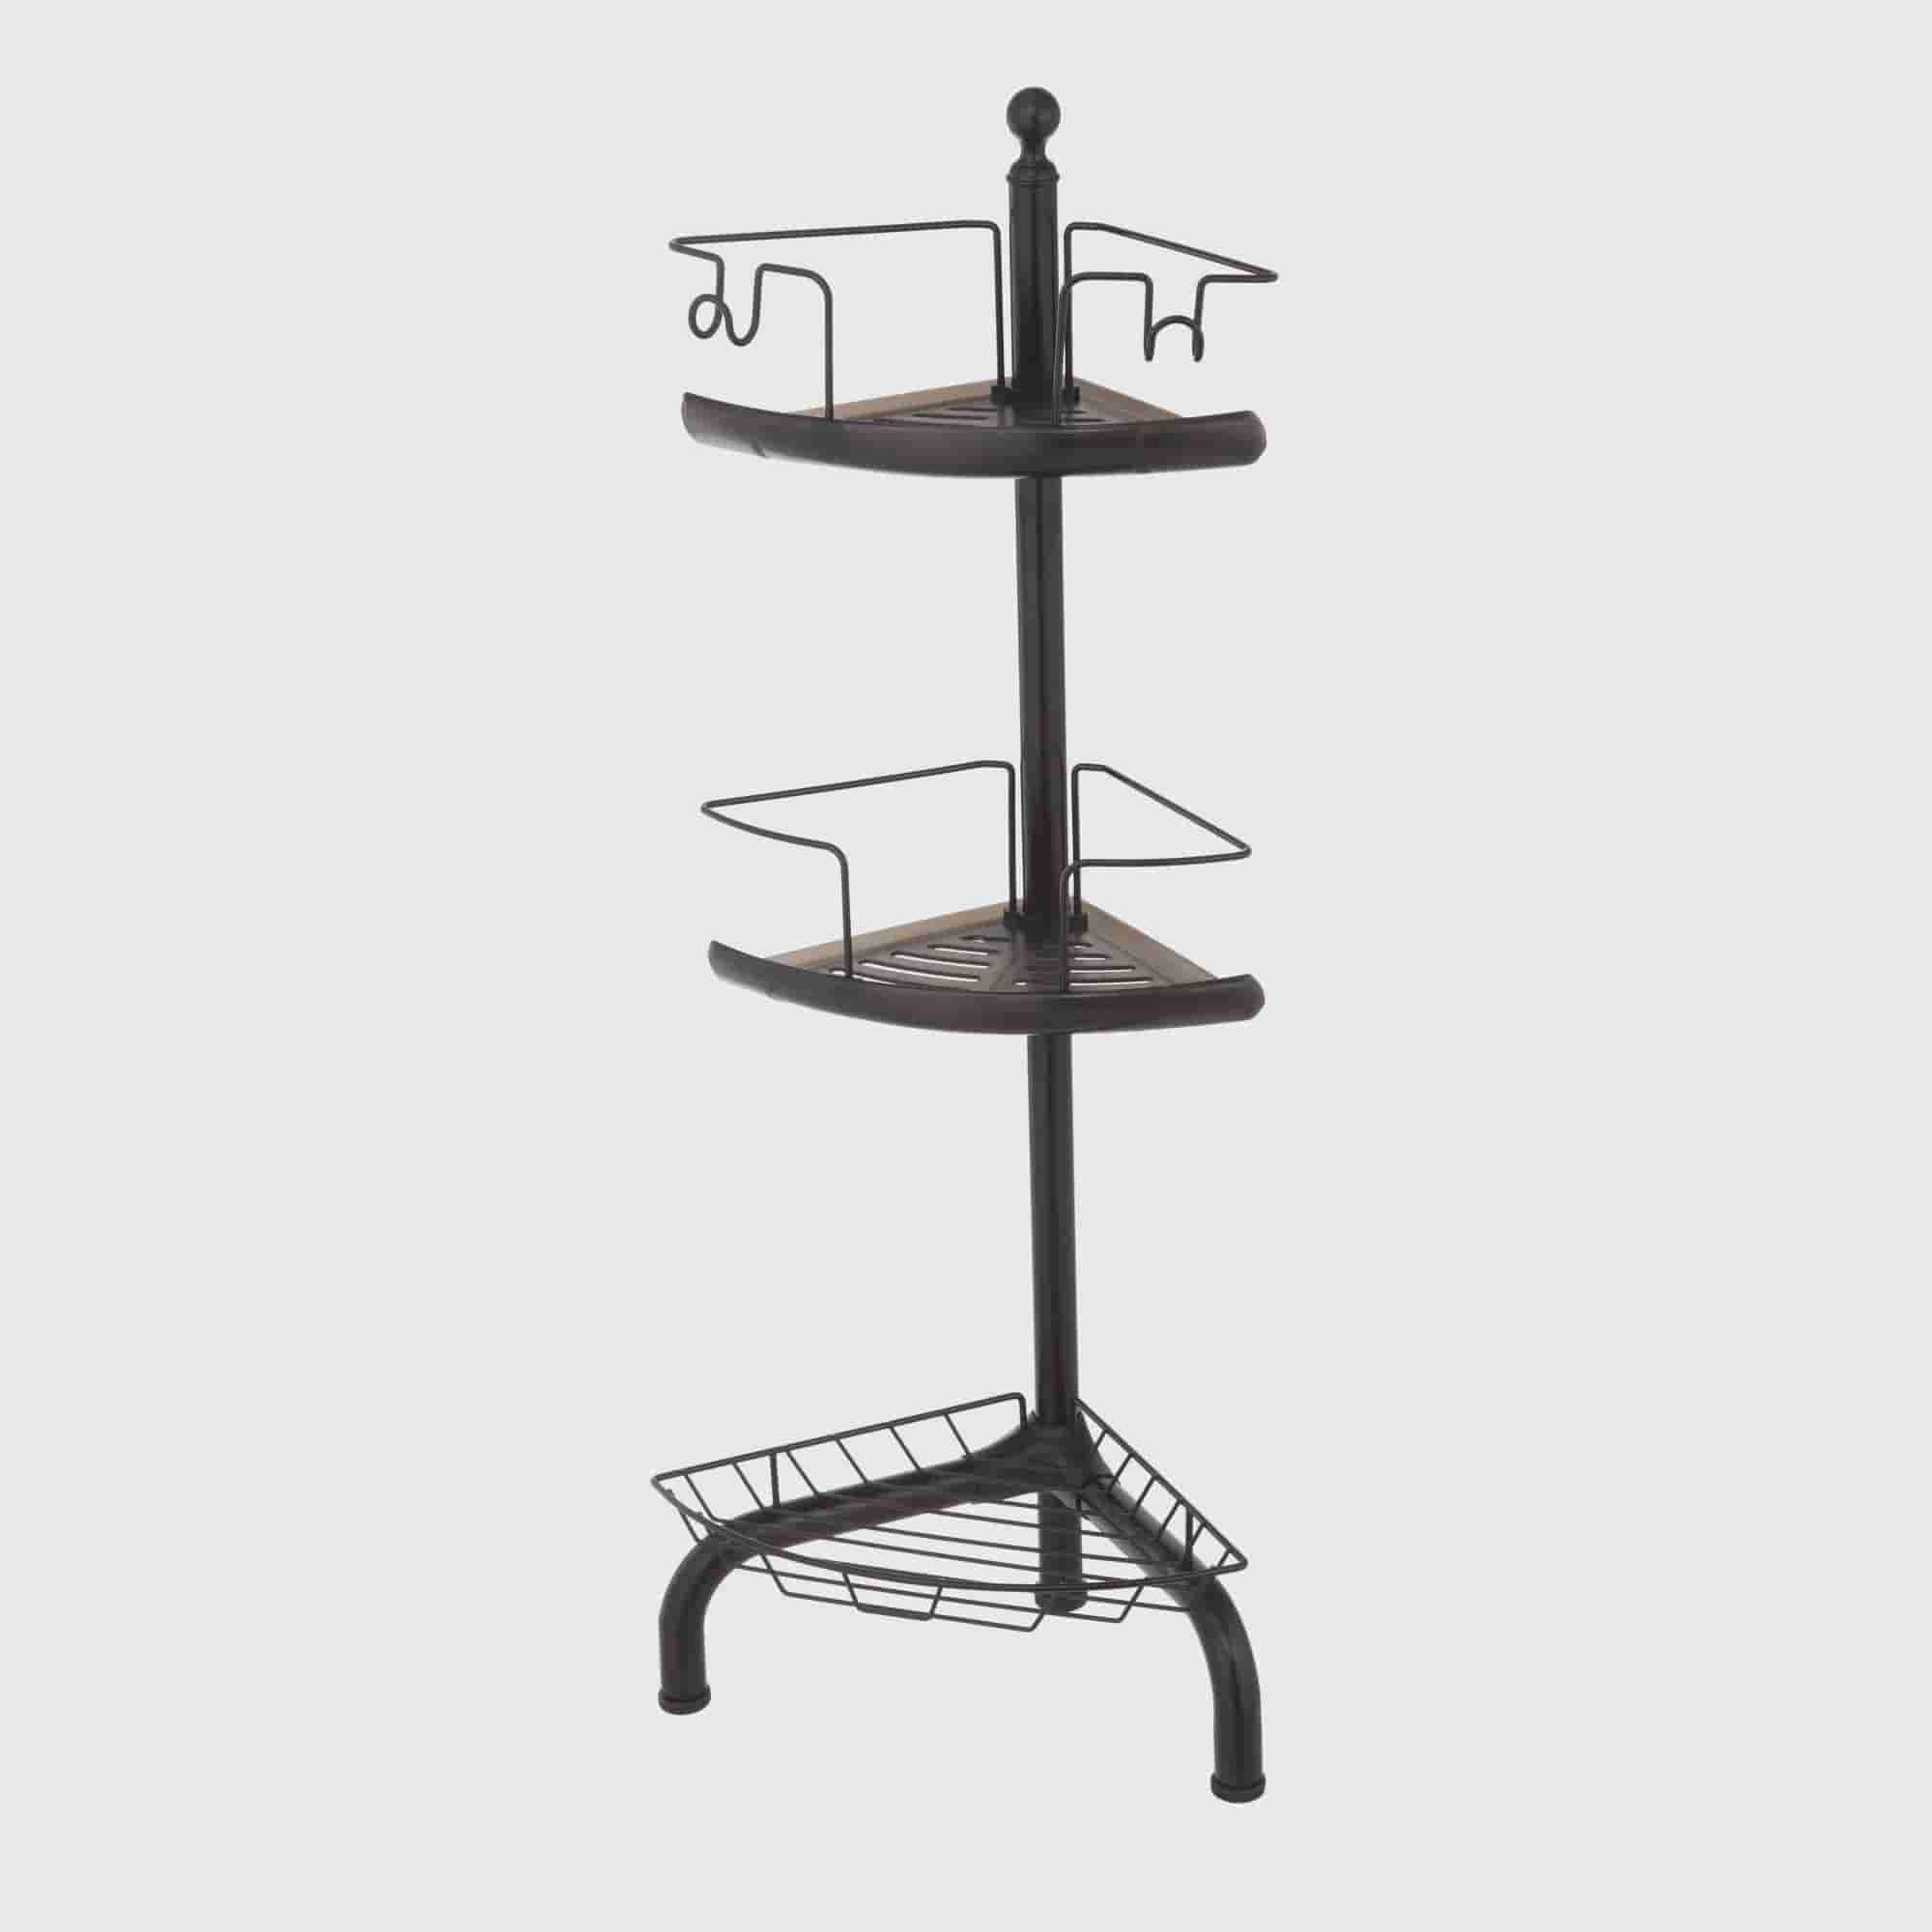 HomeZone 3 Tier Adjustable Corner Shower Caddy, Oil Rubbed Bronze    Walmart.com